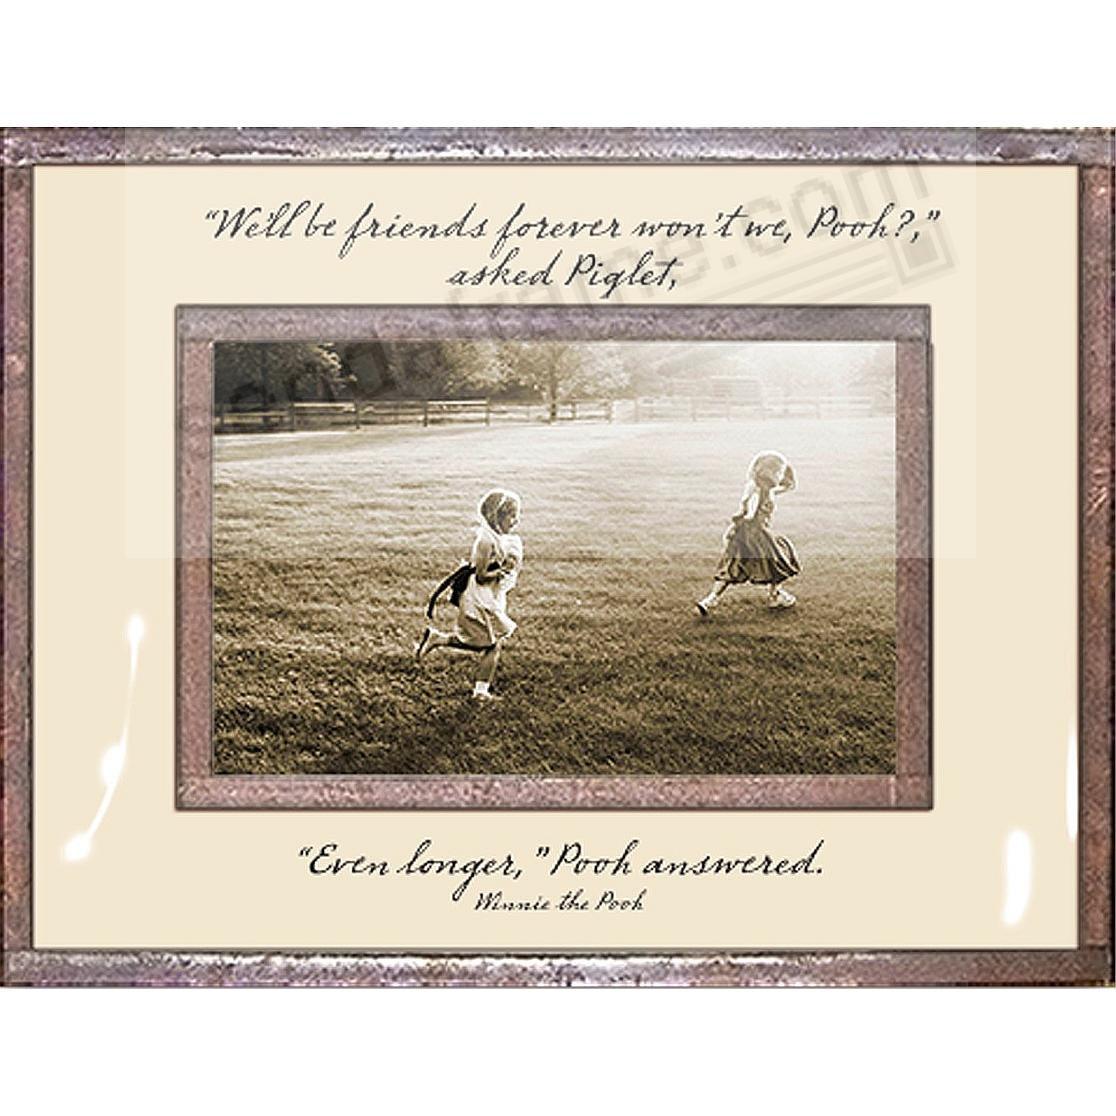 FRIENDS FOREVER ... EVEN LONGER - WINNIE THE POOH Copper 7x5 Frame by Ben's Garden®